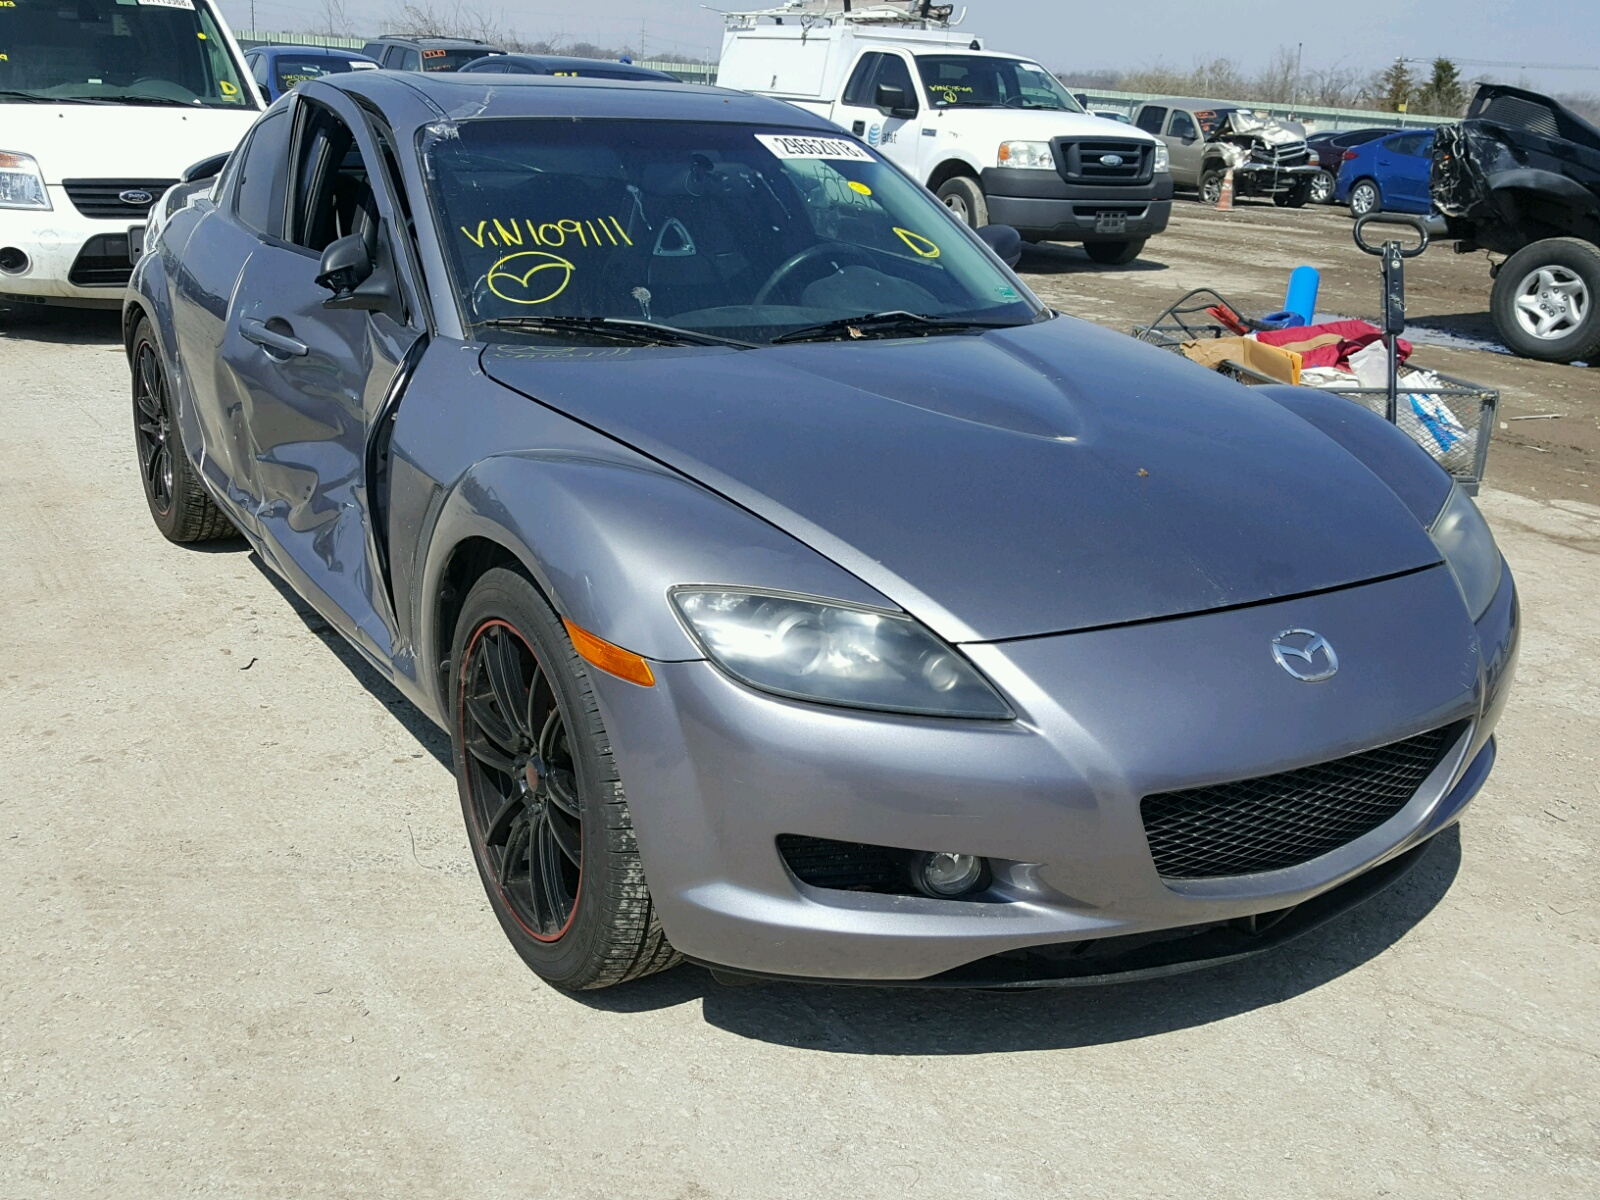 sale northtowne mkz mazda hyundai at lincoln city img used in cars for dealers volkswagen kansas